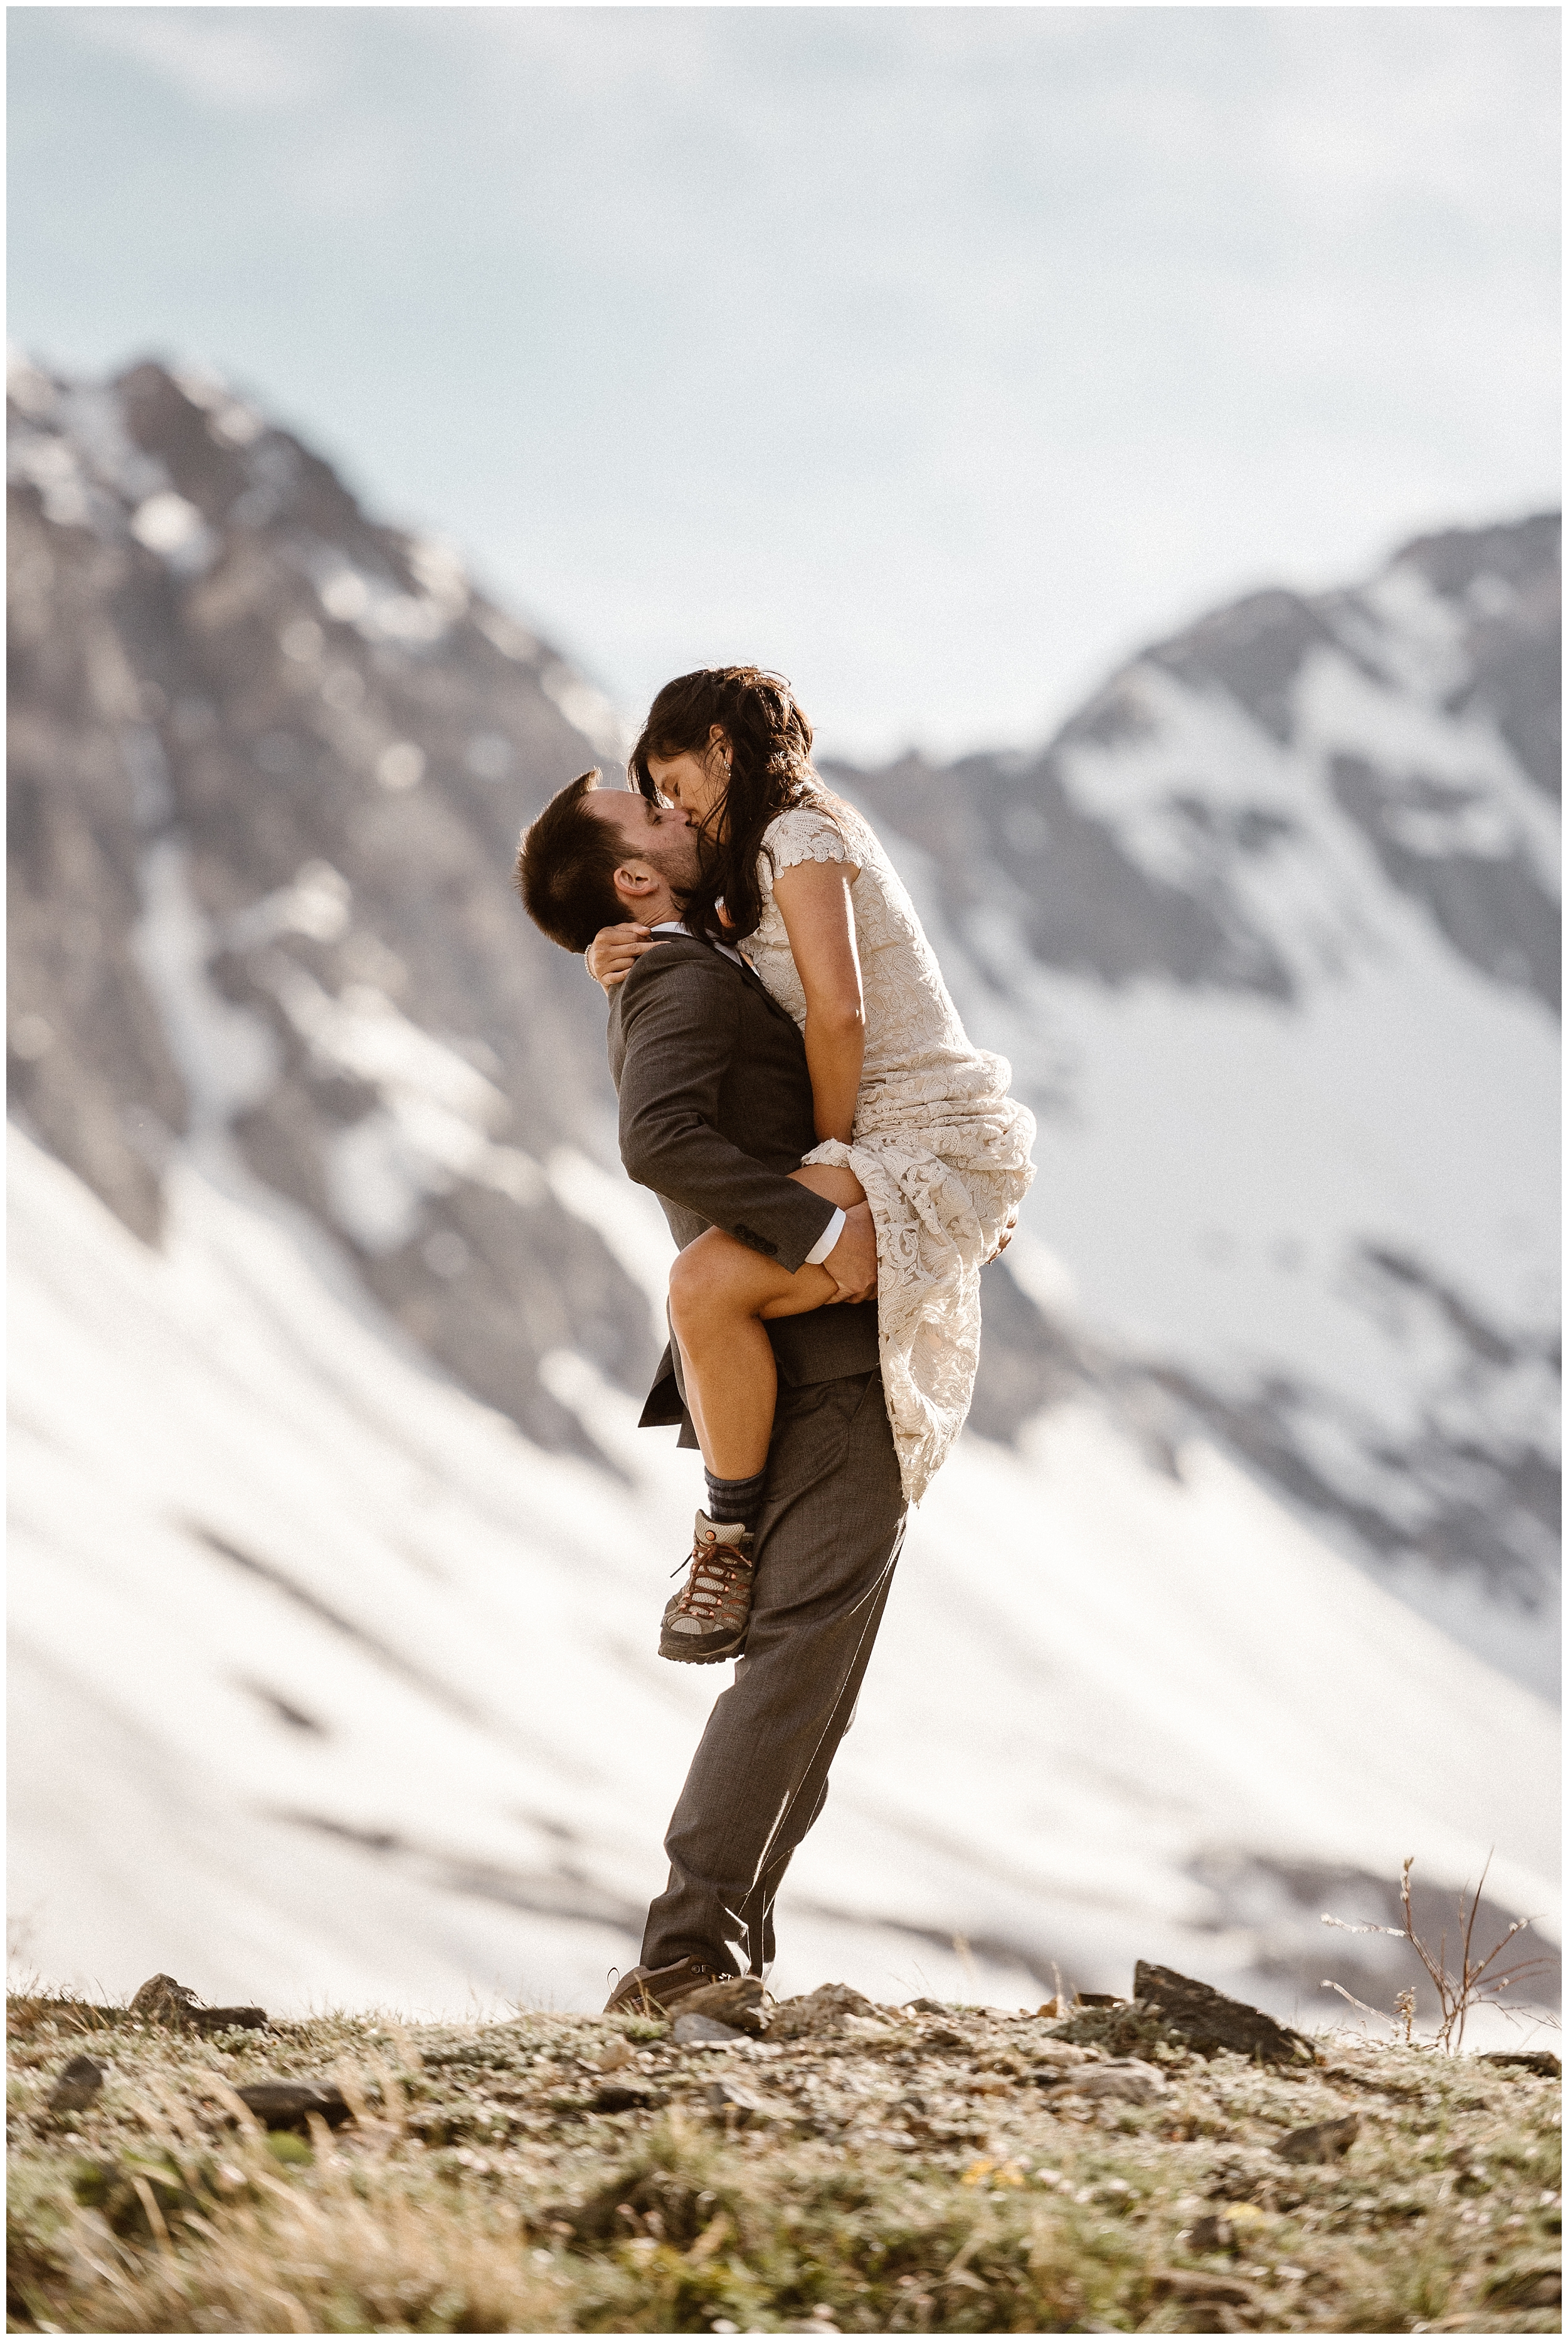 A groom holds up his bride in the mountains as they kiss and embrace after their elopement ceremony. When people ask, how do you elope, this is what it looks like — doing exactly what you want on your wedding day and taking the elopement photos you want to take.